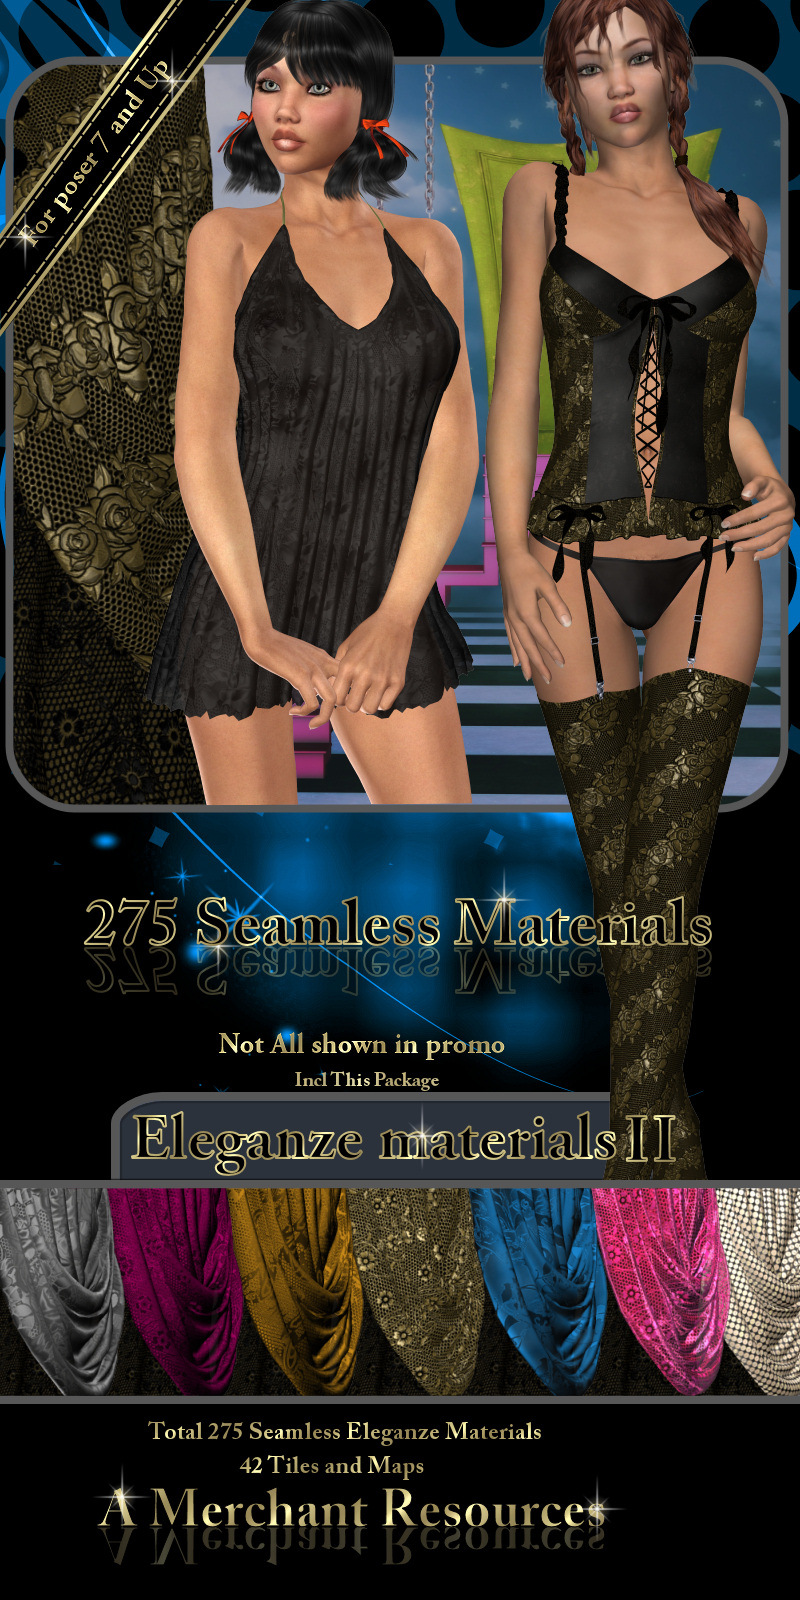 Eleganze materials II